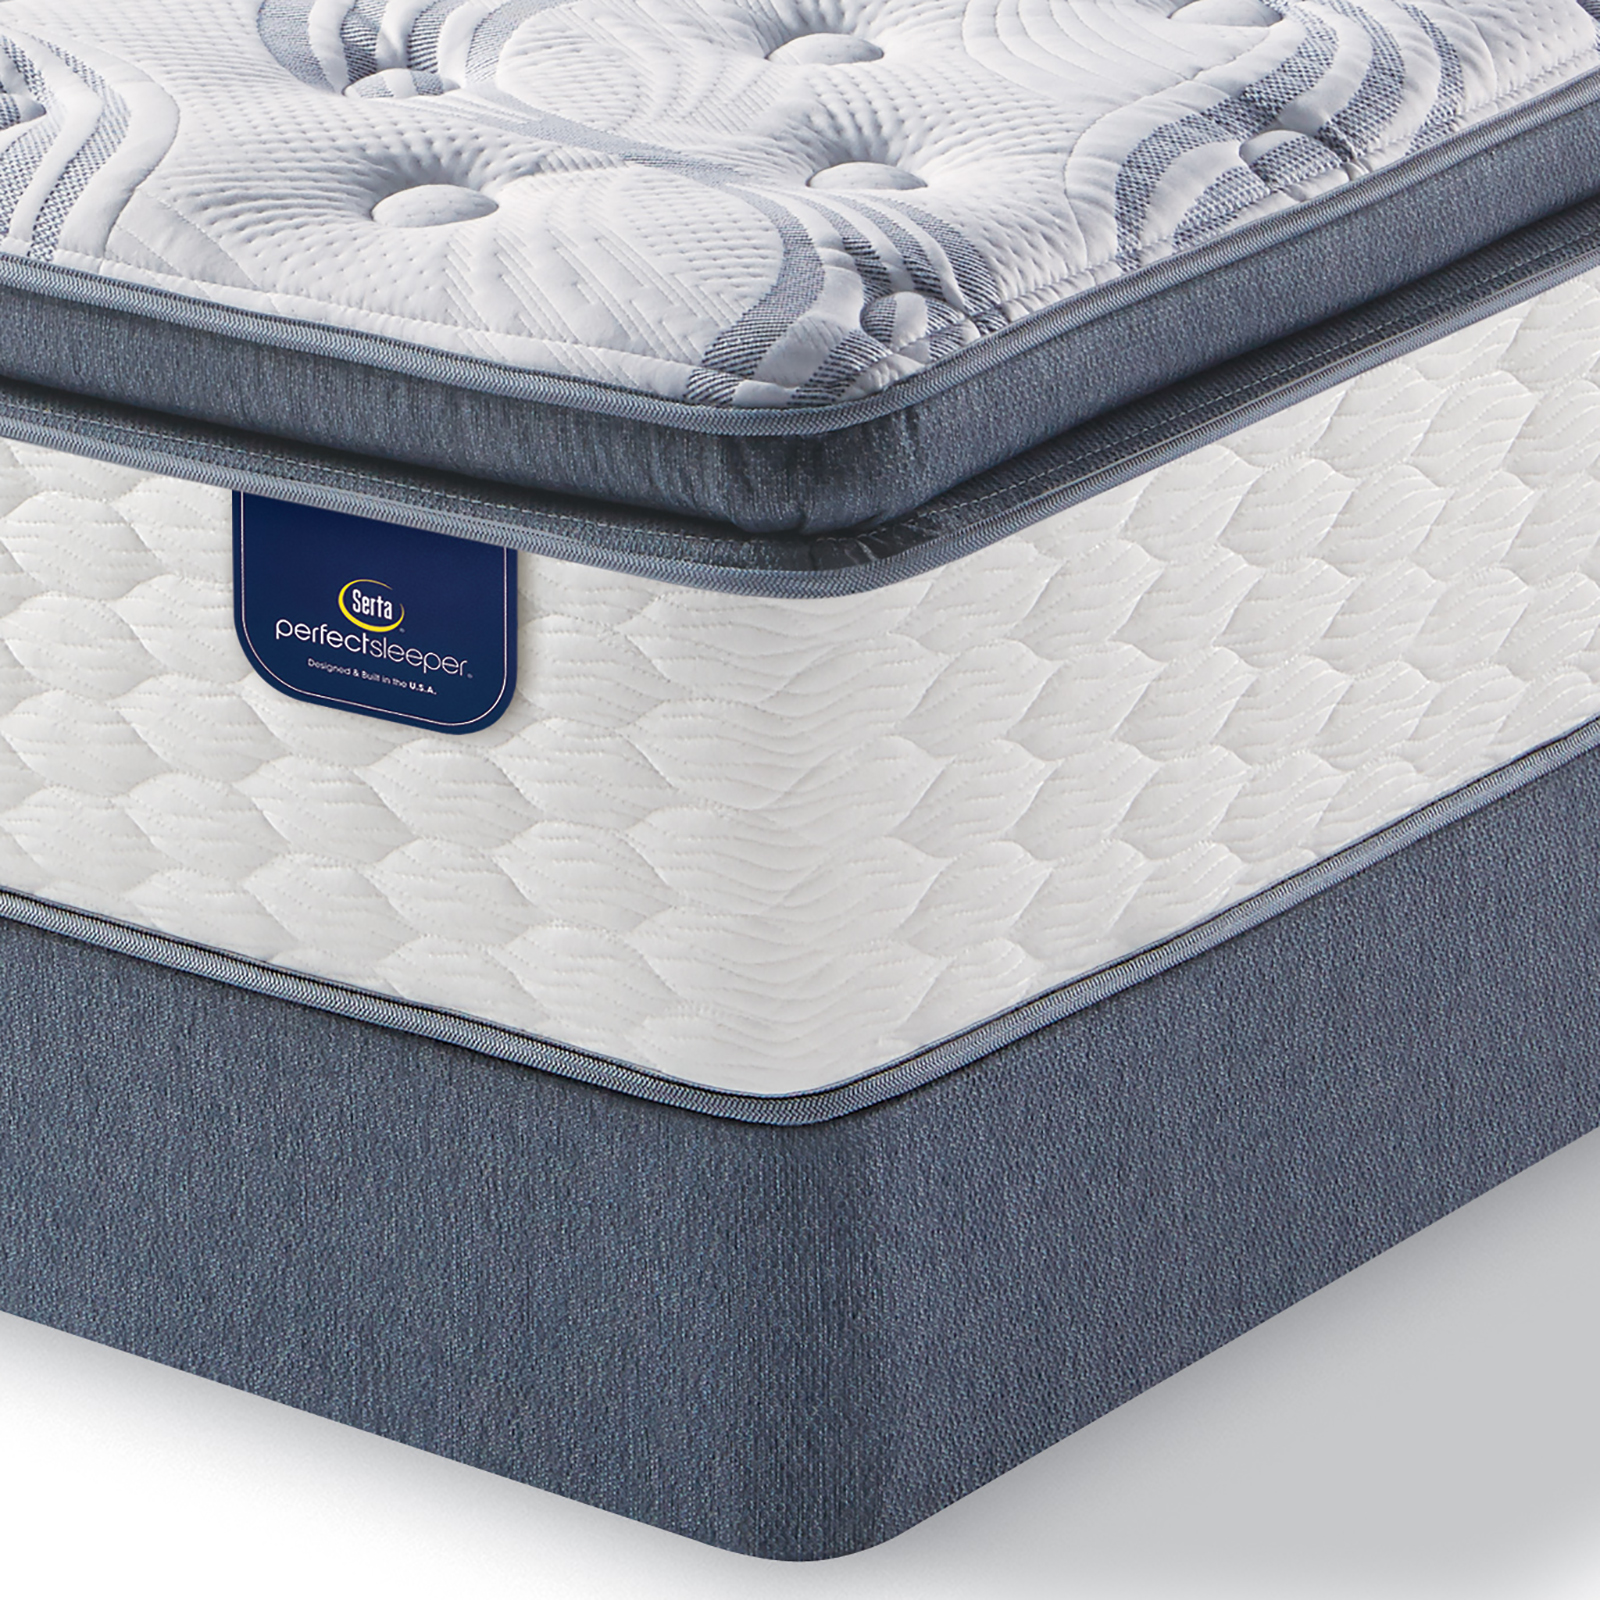 Serta Perfect Sleeper Teddington Firm King Super Pillowtop